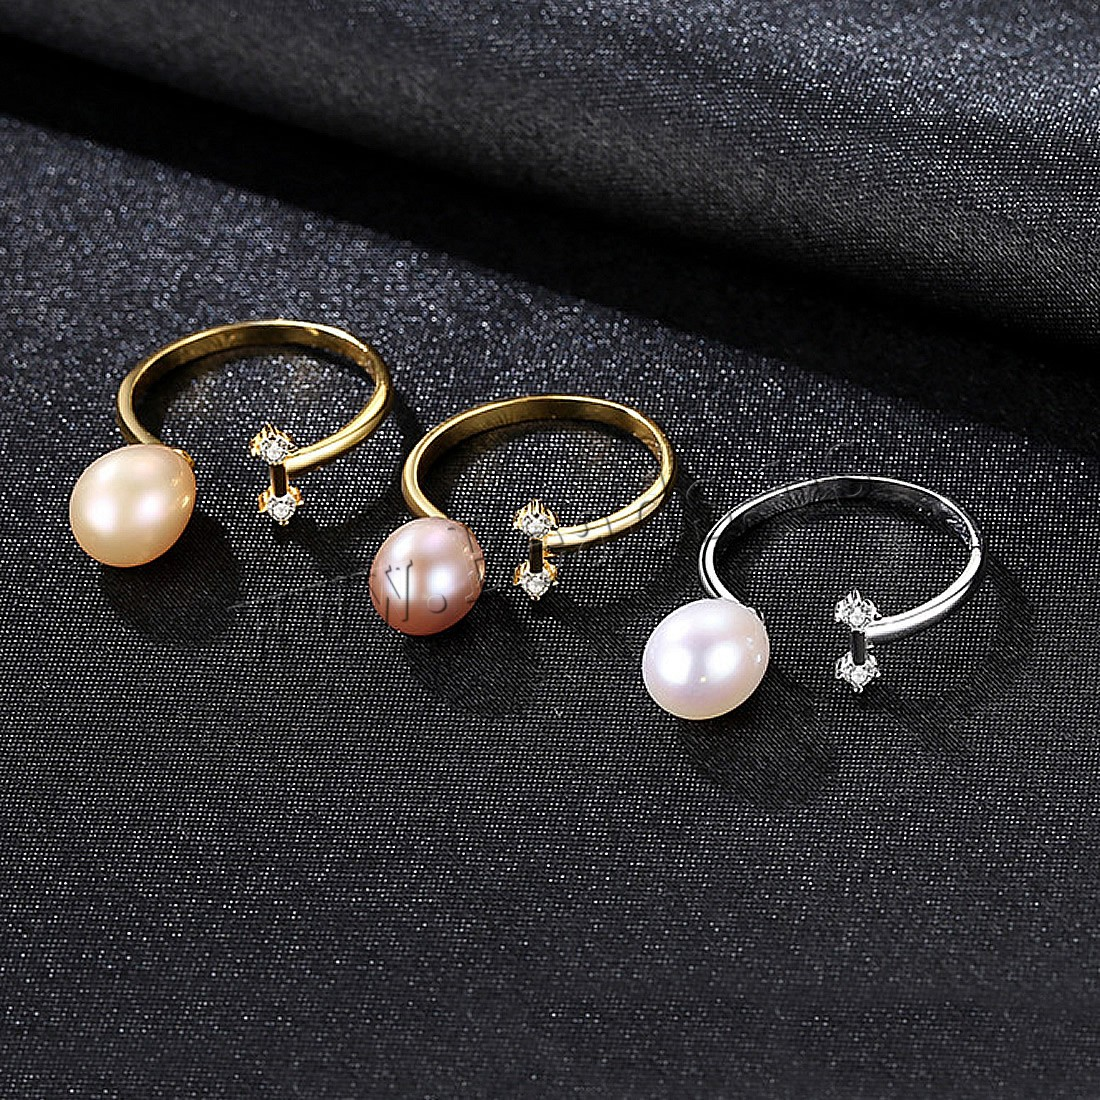 Buy Freshwater Pearl Finger Ring Brass Cubic Zirconia & Freshwater Pearl plated woman colors choice nickel lead & cadmium free 11x7.48mm US Ring Size:7-9 Sold PC